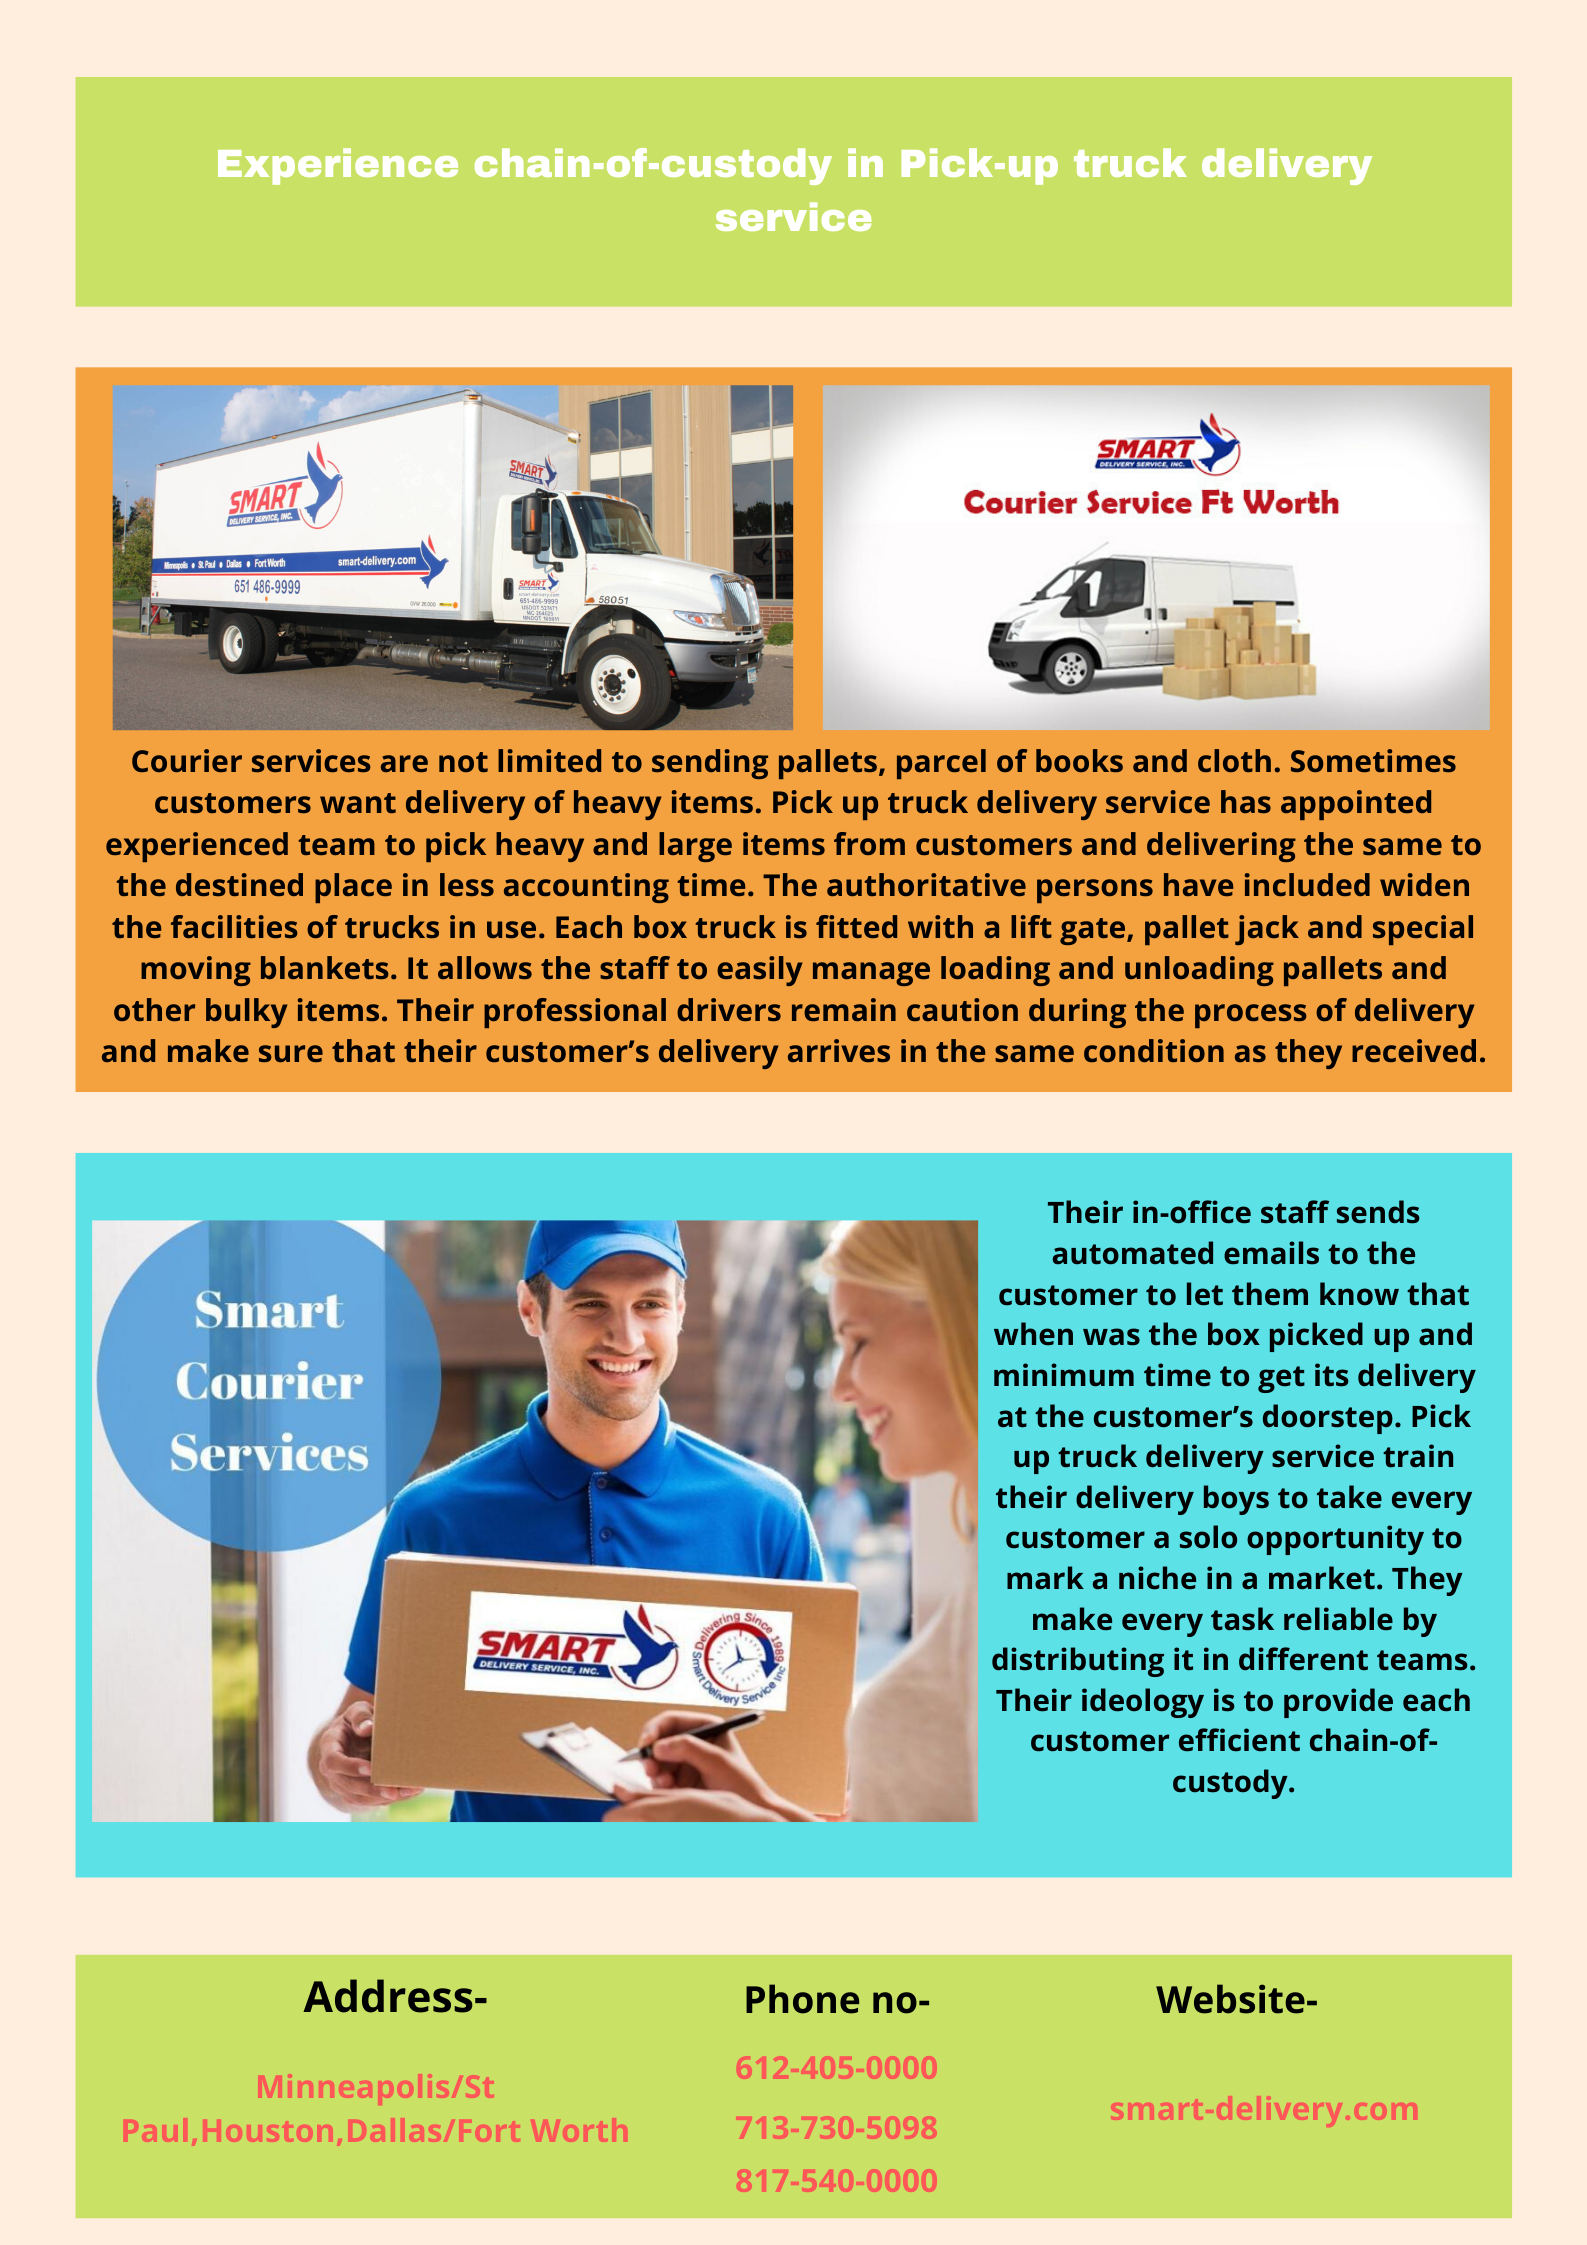 Our smart pickup truck delivery service provides ondemand